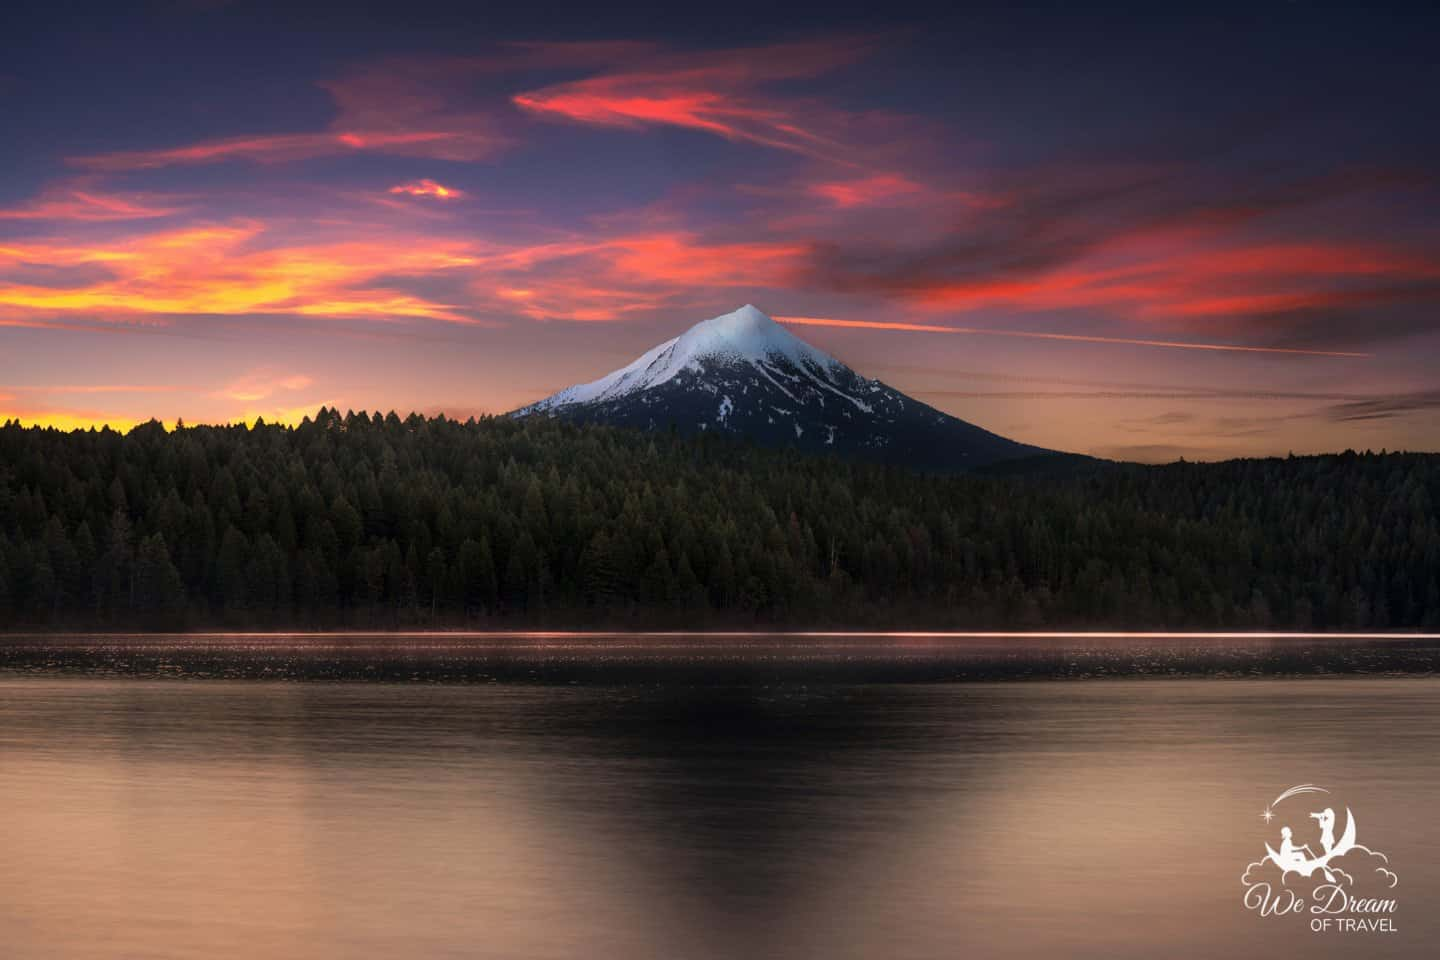 Mt Mcloughlin at sunrise, taken from Willow Lake in Southern Oregon